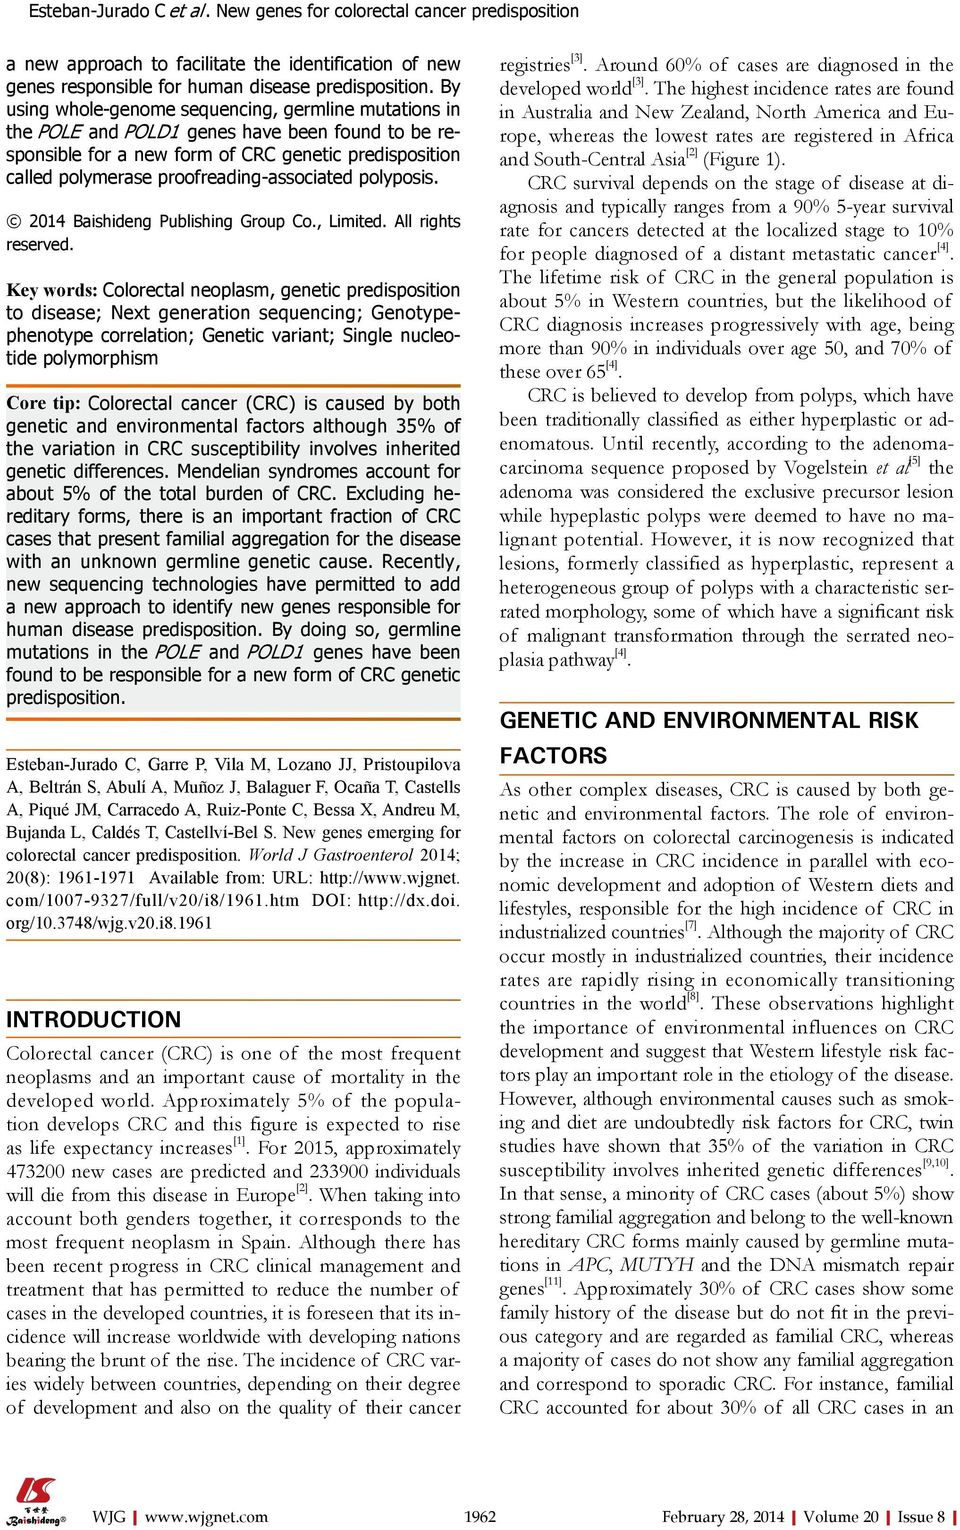 proofreading-associated polyposis. 2014 Baishideng Publishing Group Co., Limited. All rights reserved.